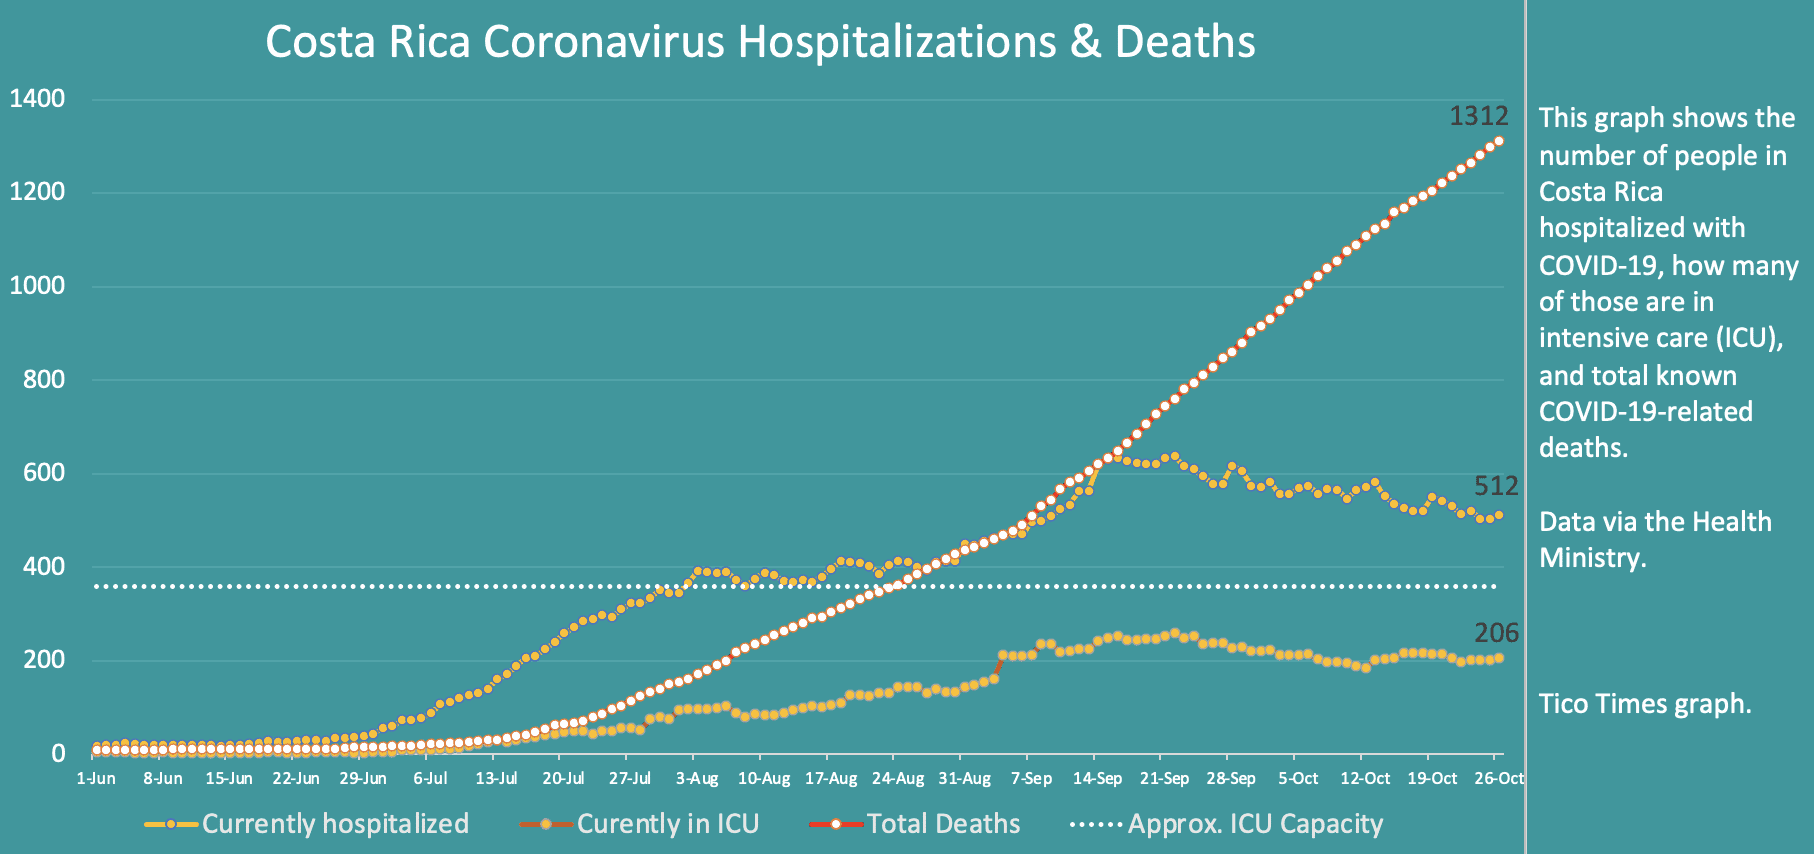 Costa Rica coronavirus hospitalizations and deaths on October 26, 2020